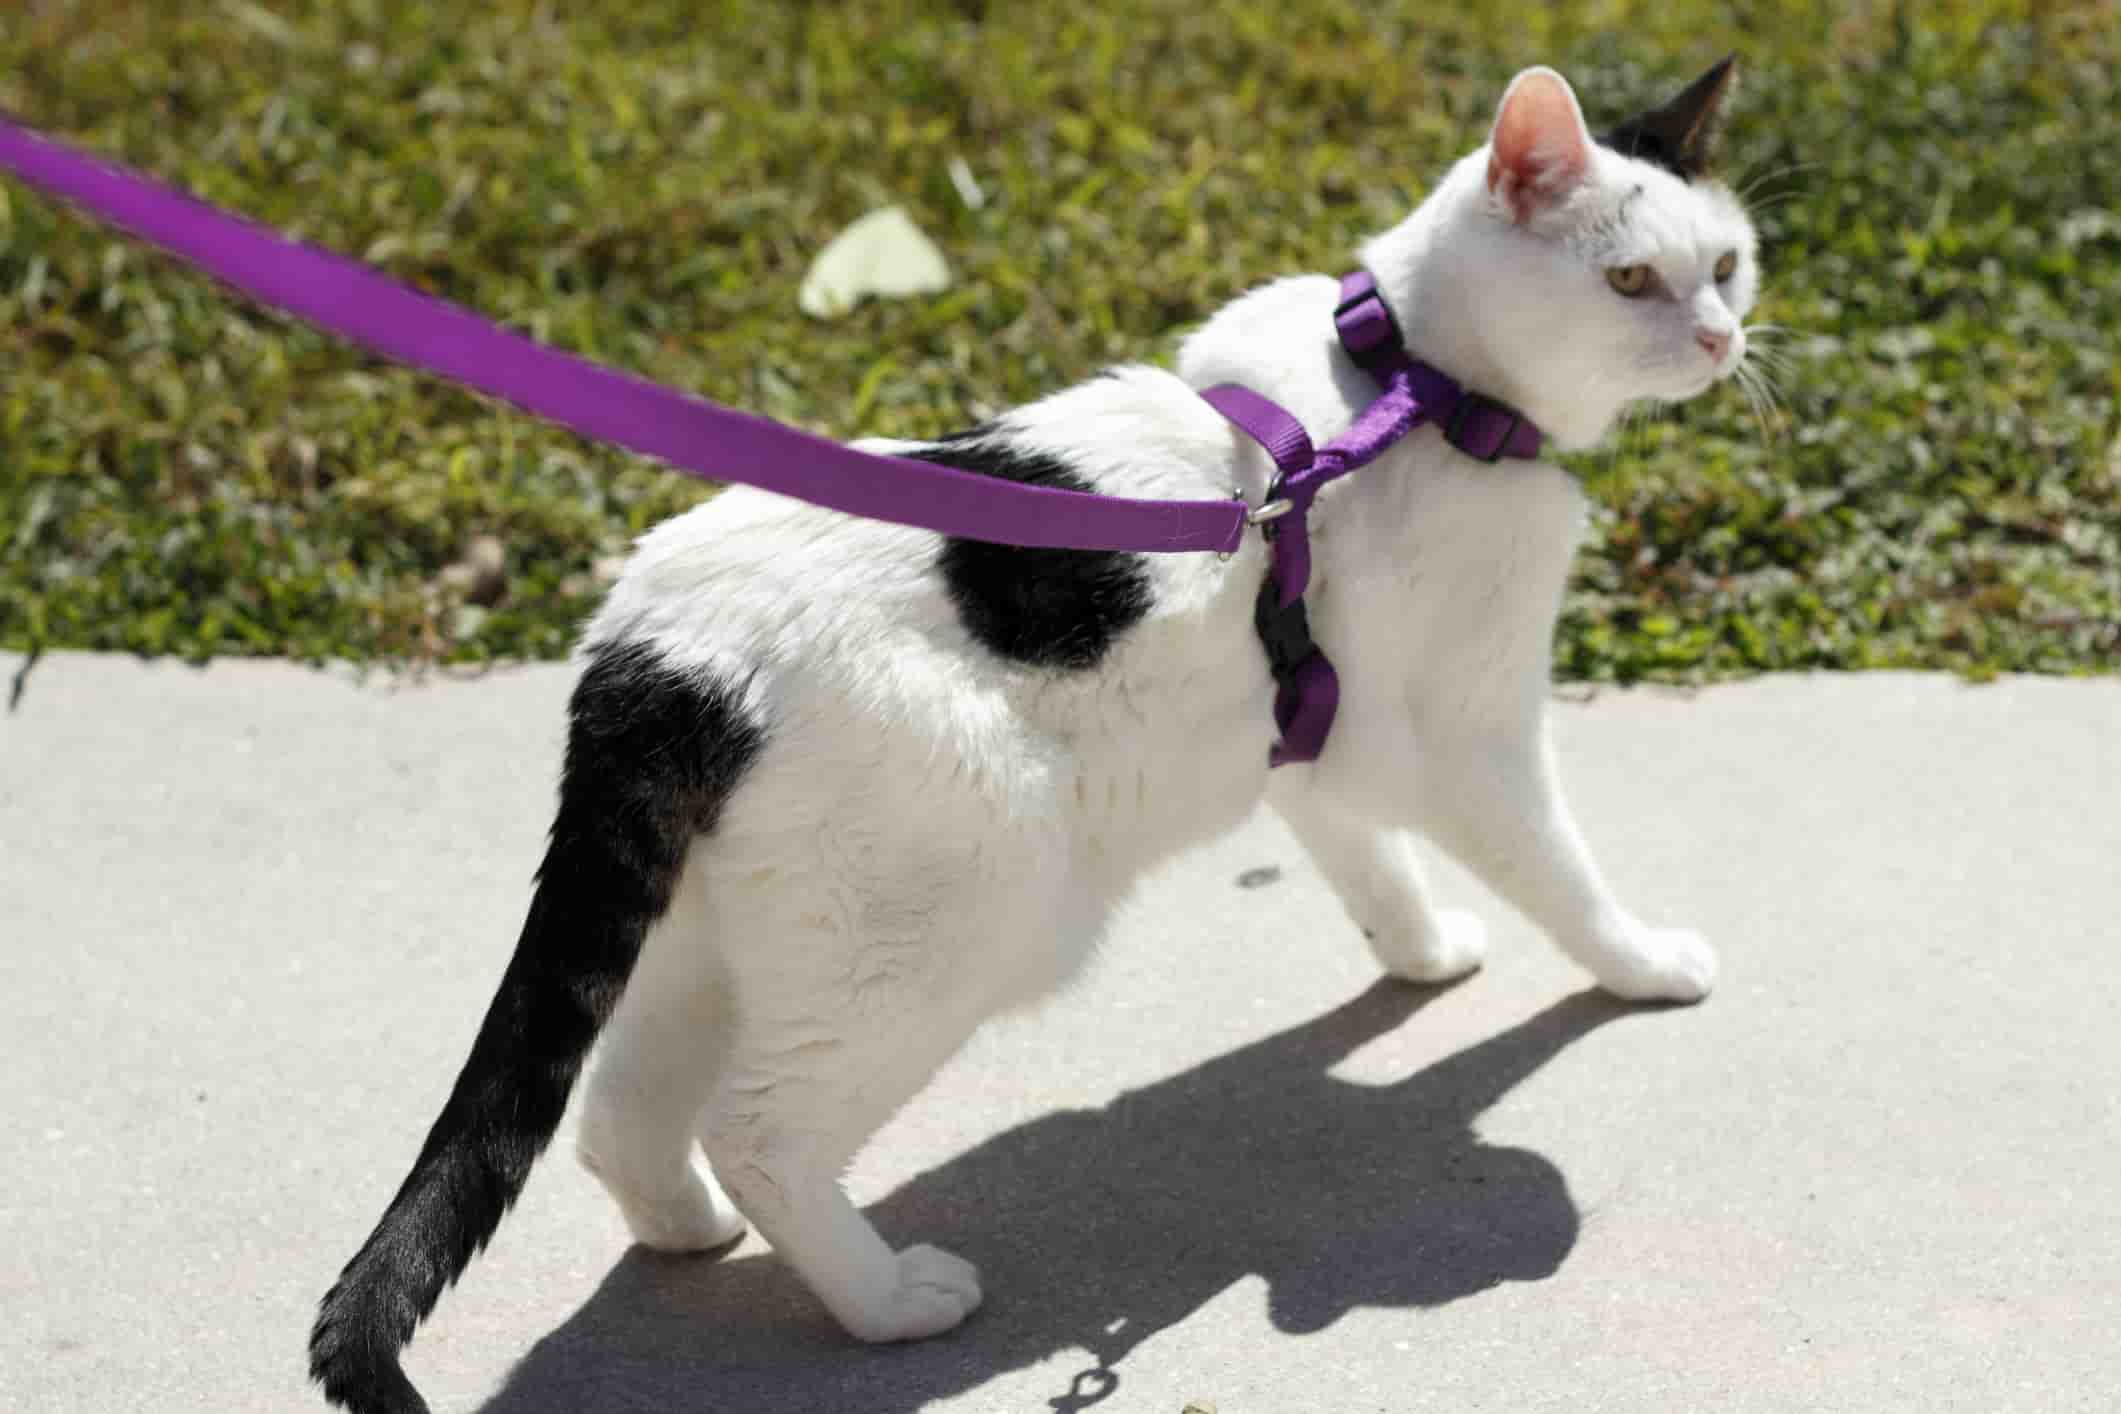 cat walking - cat harness and lead